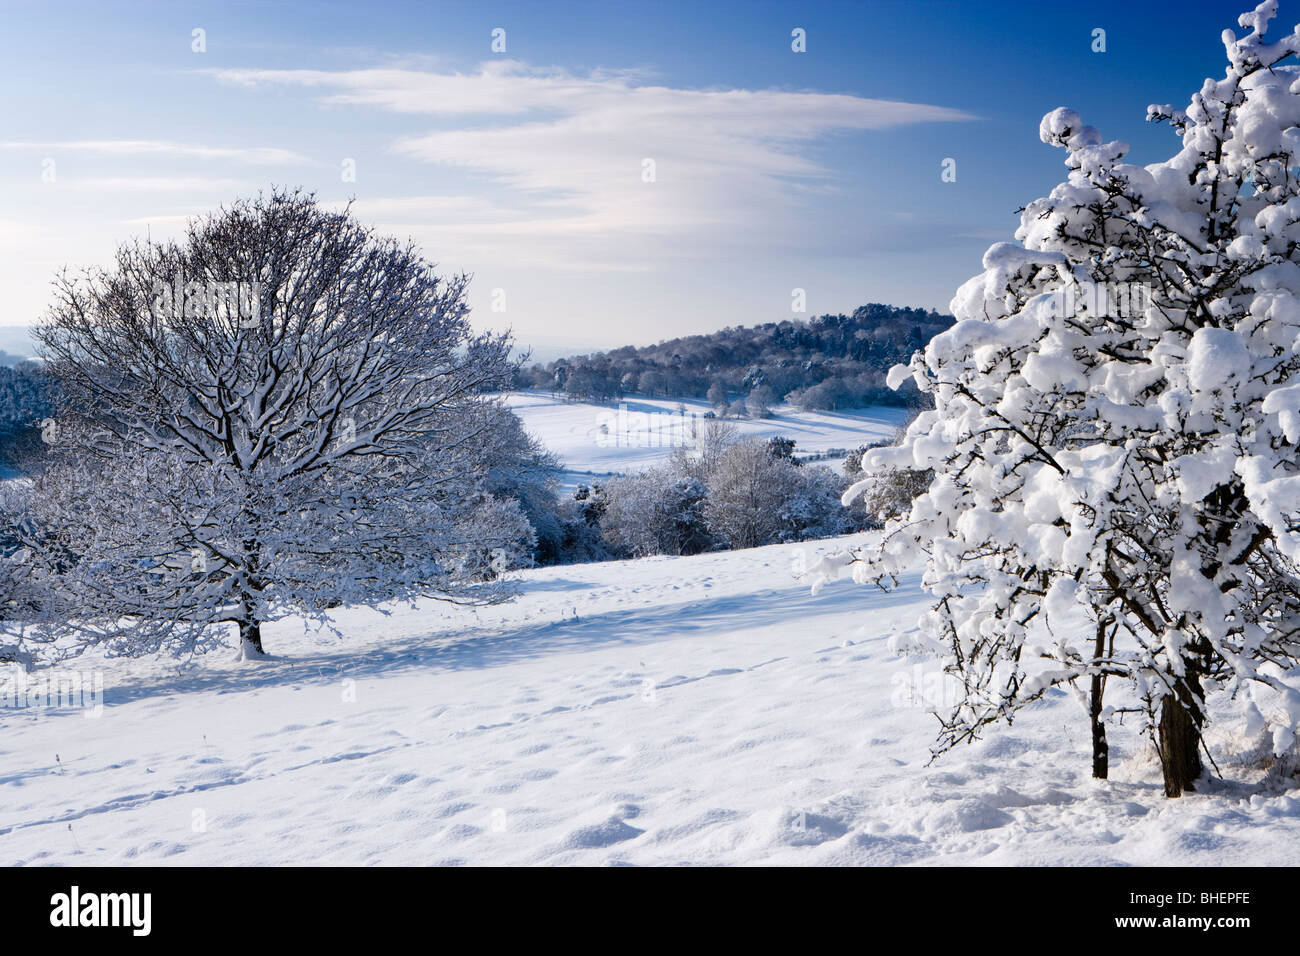 L'hiver à Newlands Corner près de Guildford, Surrey, UK. Photo Stock